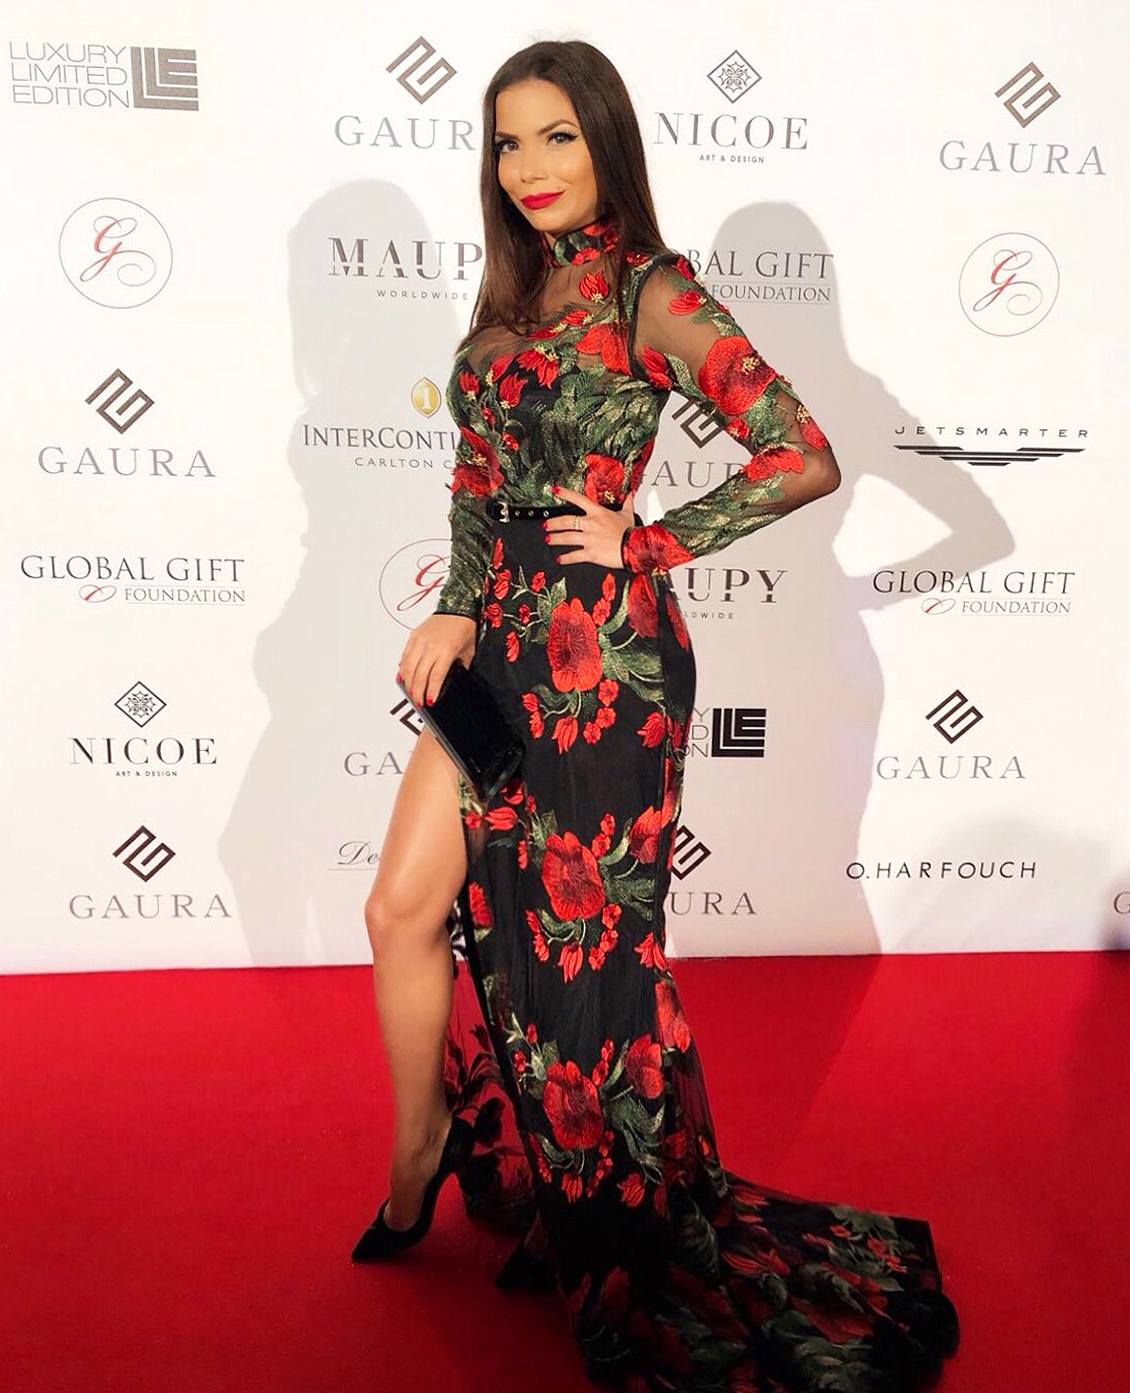 REBECA LISCANO DRESSED BY RAQUEL BALENCIA FOR GLOBAL GIFT FOUNDATION GALA, DURING CANNES FILM FESTIVAL 2018